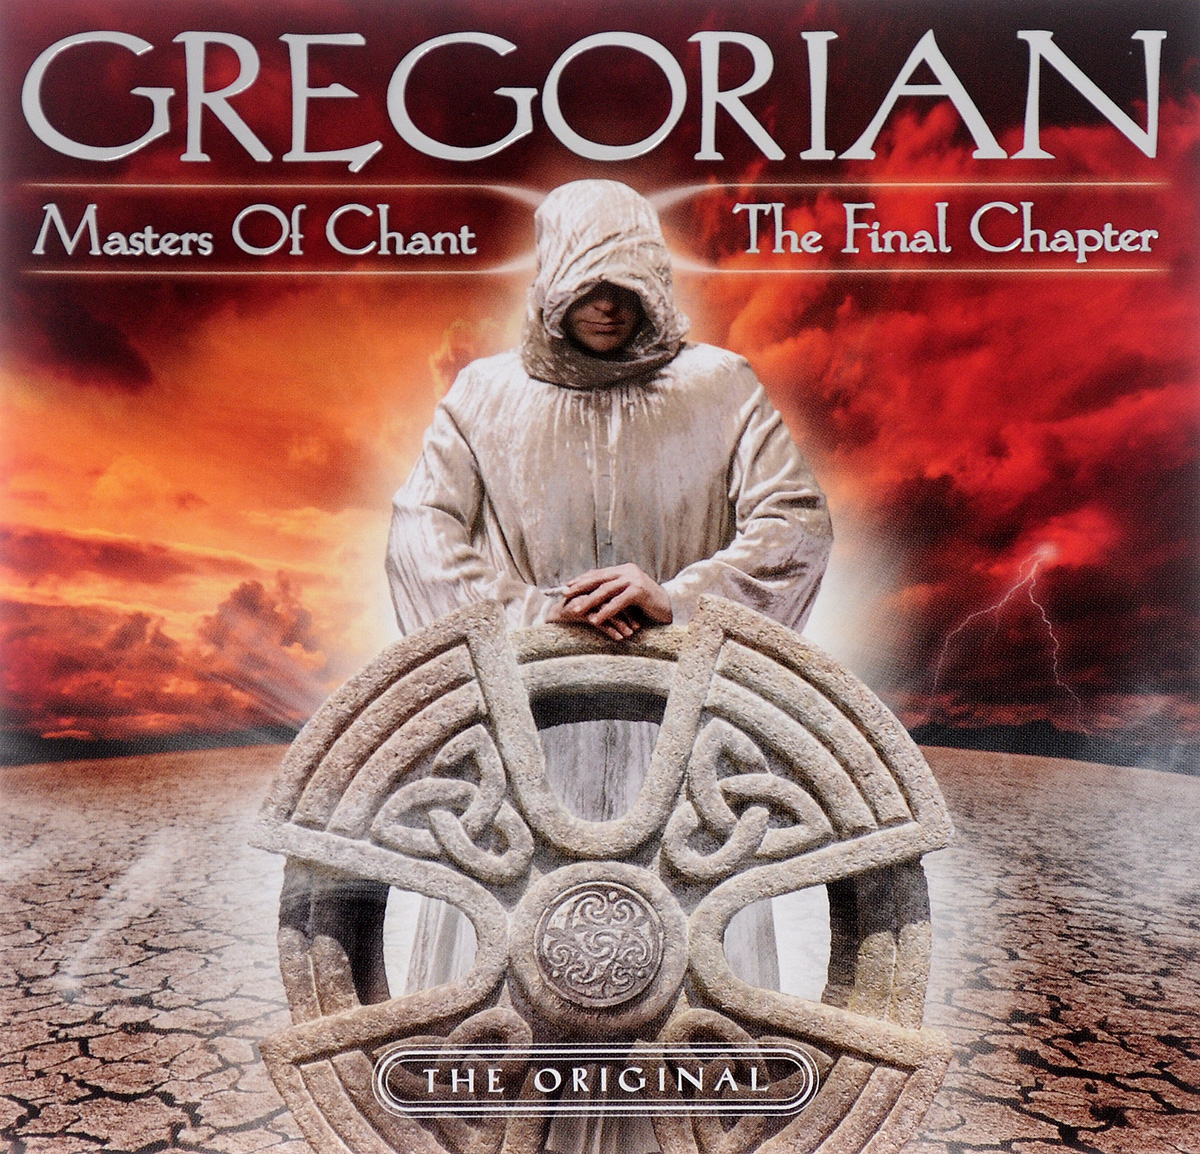 Gregorian. Masters Of Chant. The Final Chapter